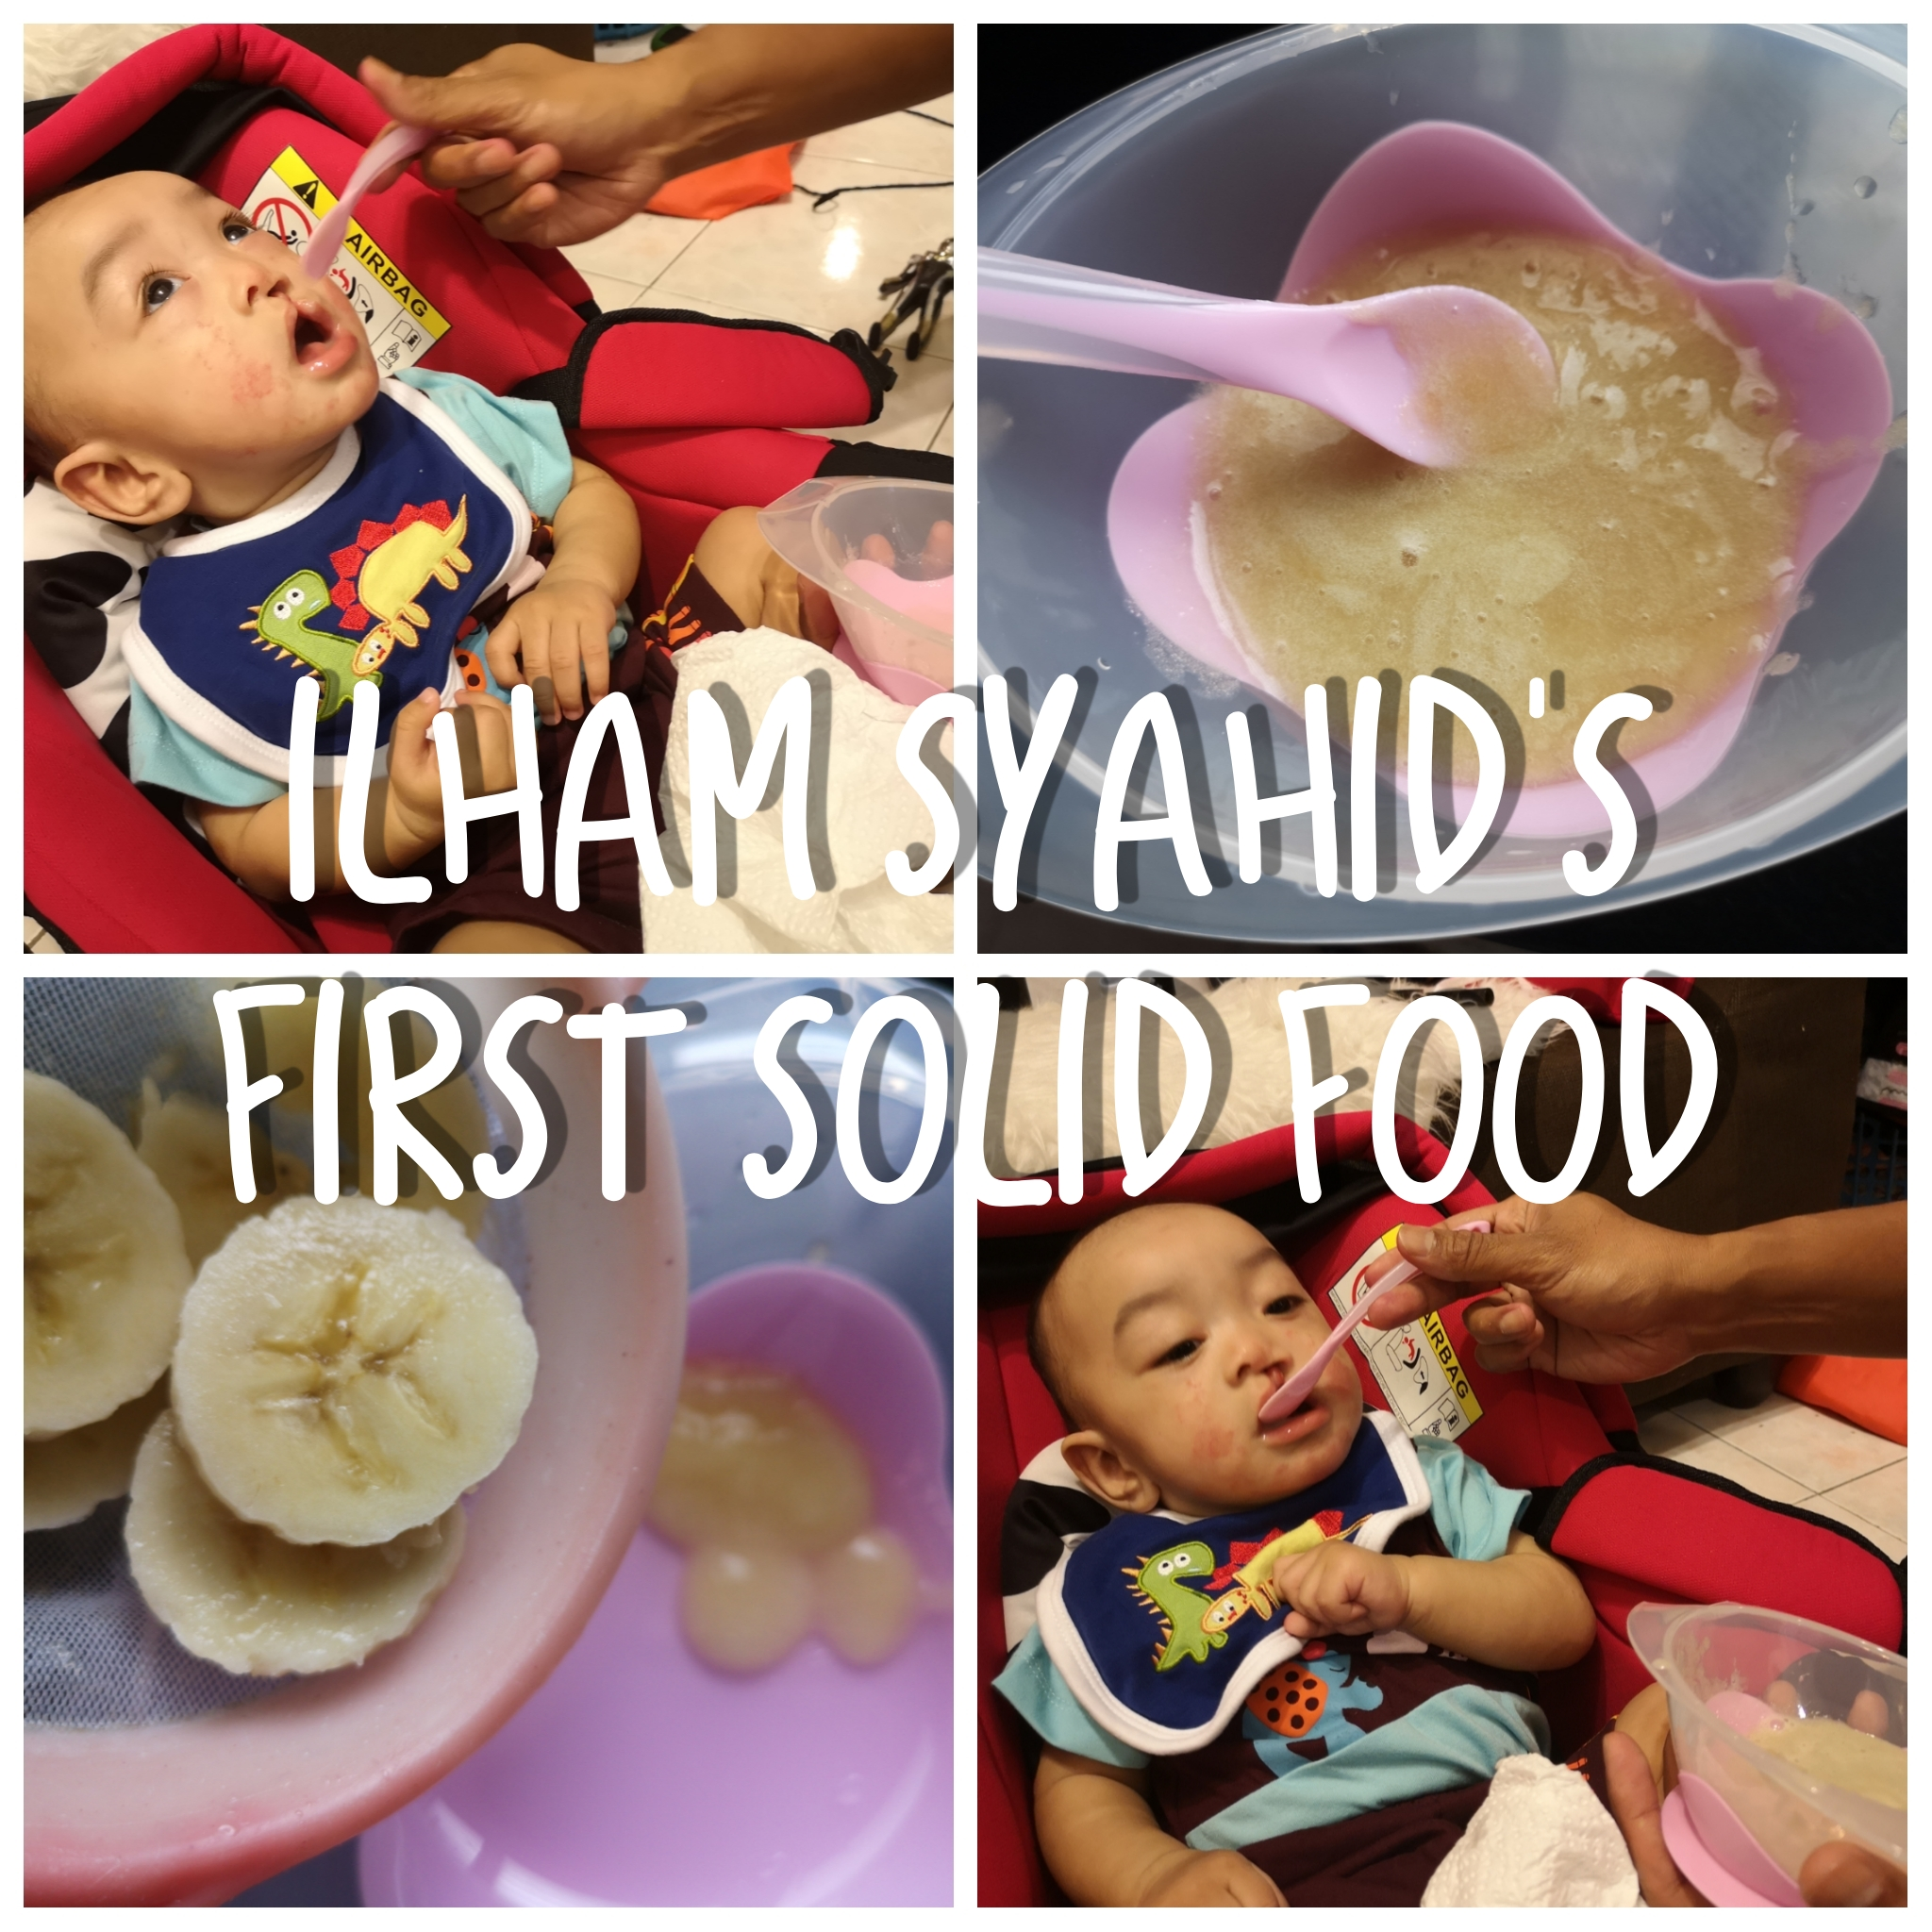 Ilham Syahid's First Solid Food